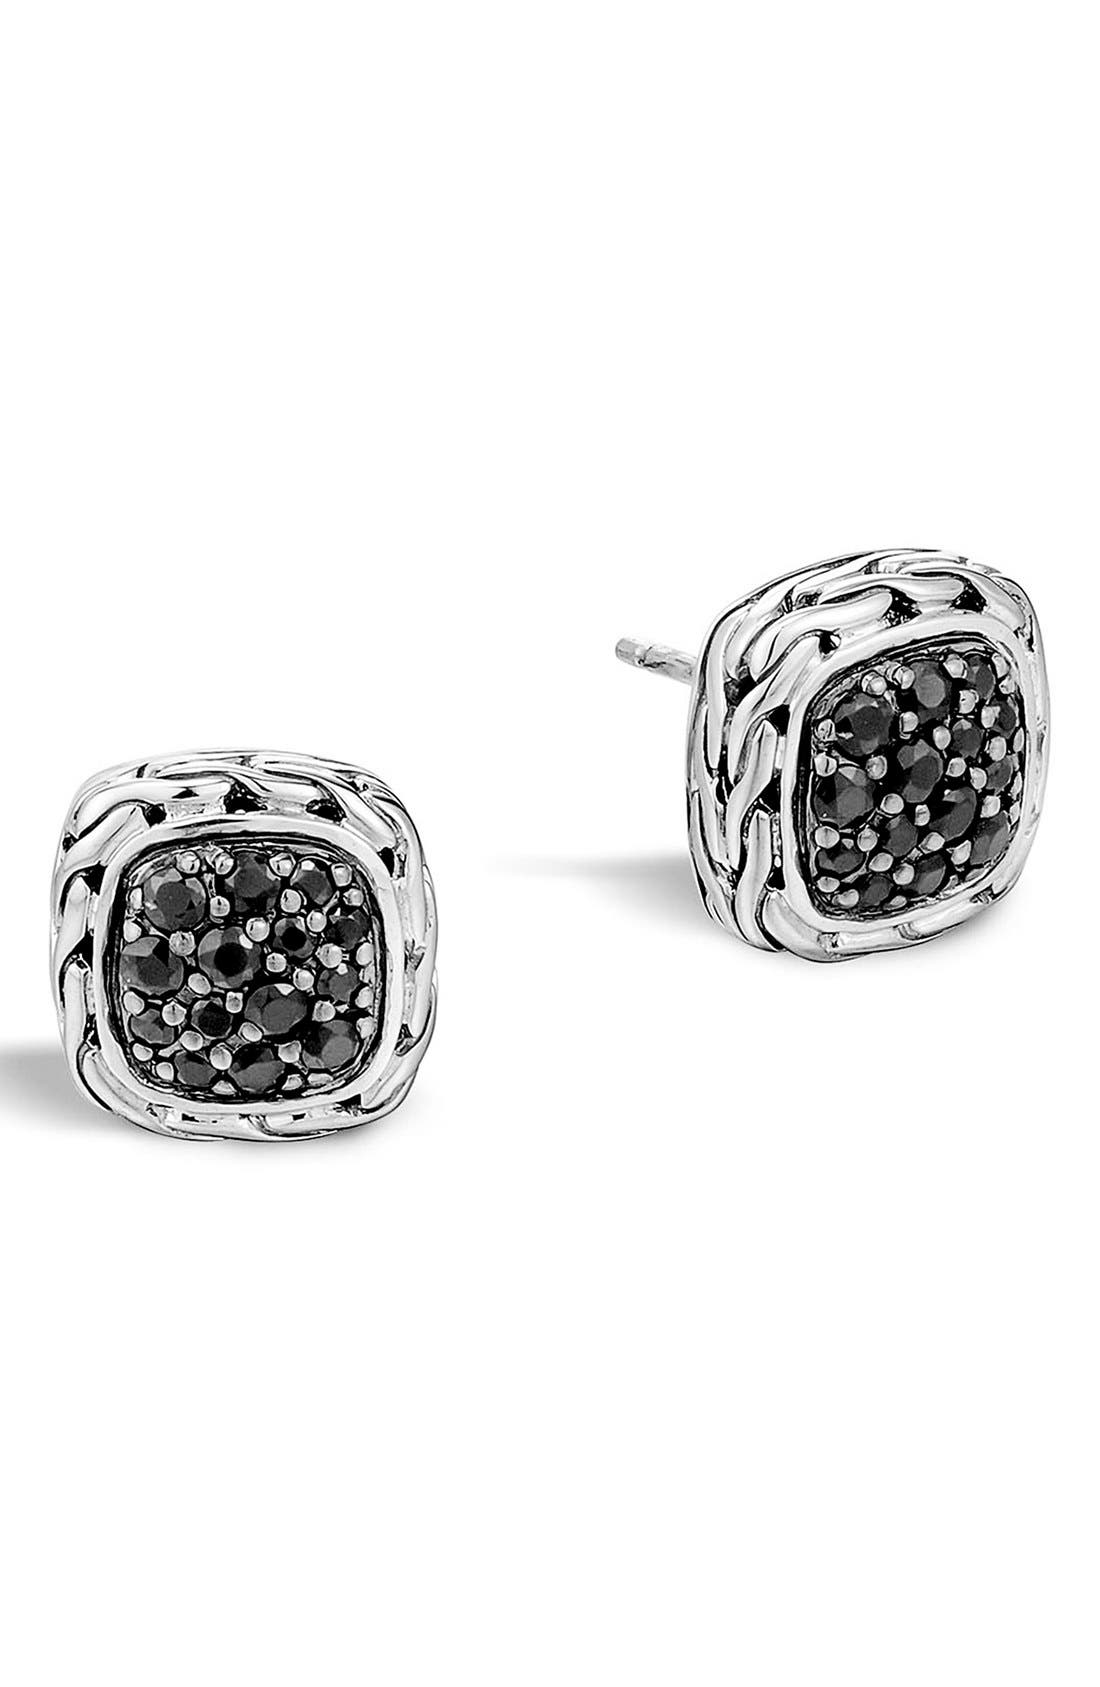 Main Image - John Hardy 'Classic Chain' Small Square Stud Earrings